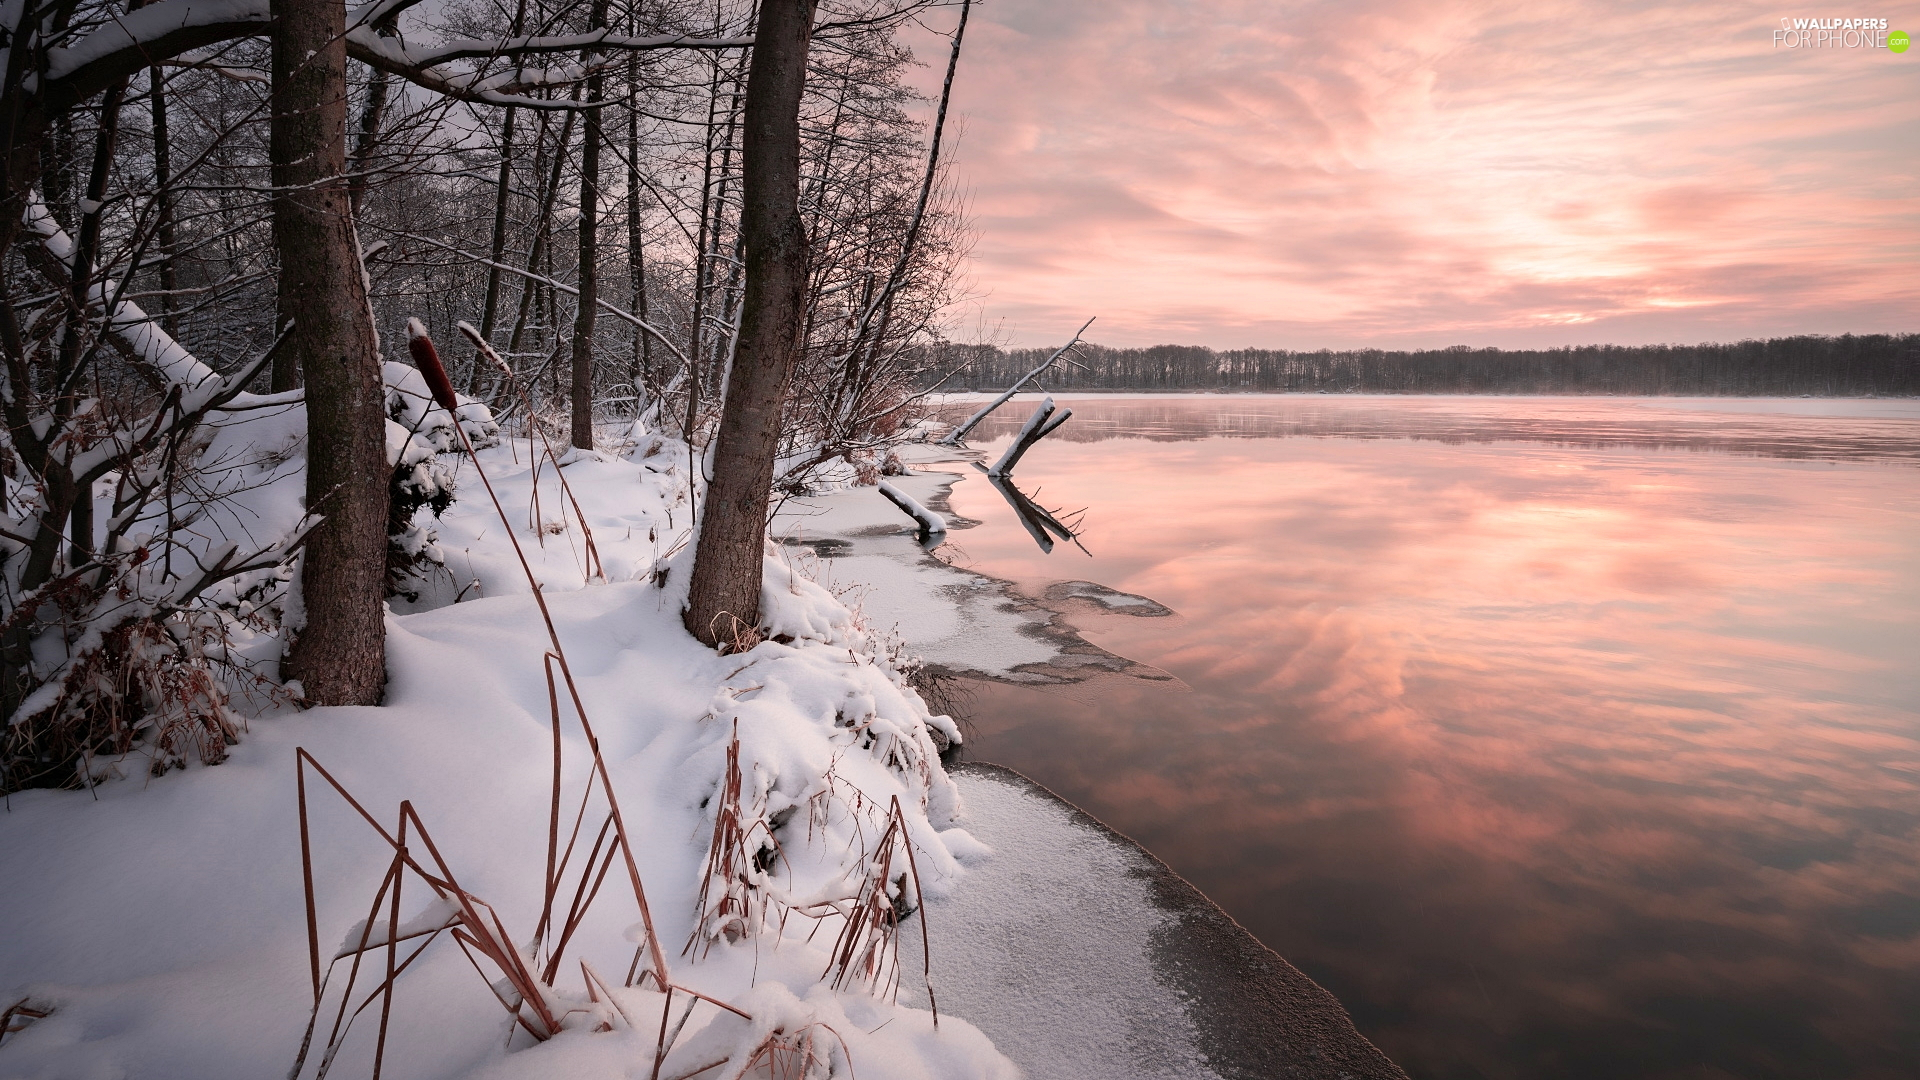 viewes, forest, snow, trees, winter, coast, lake